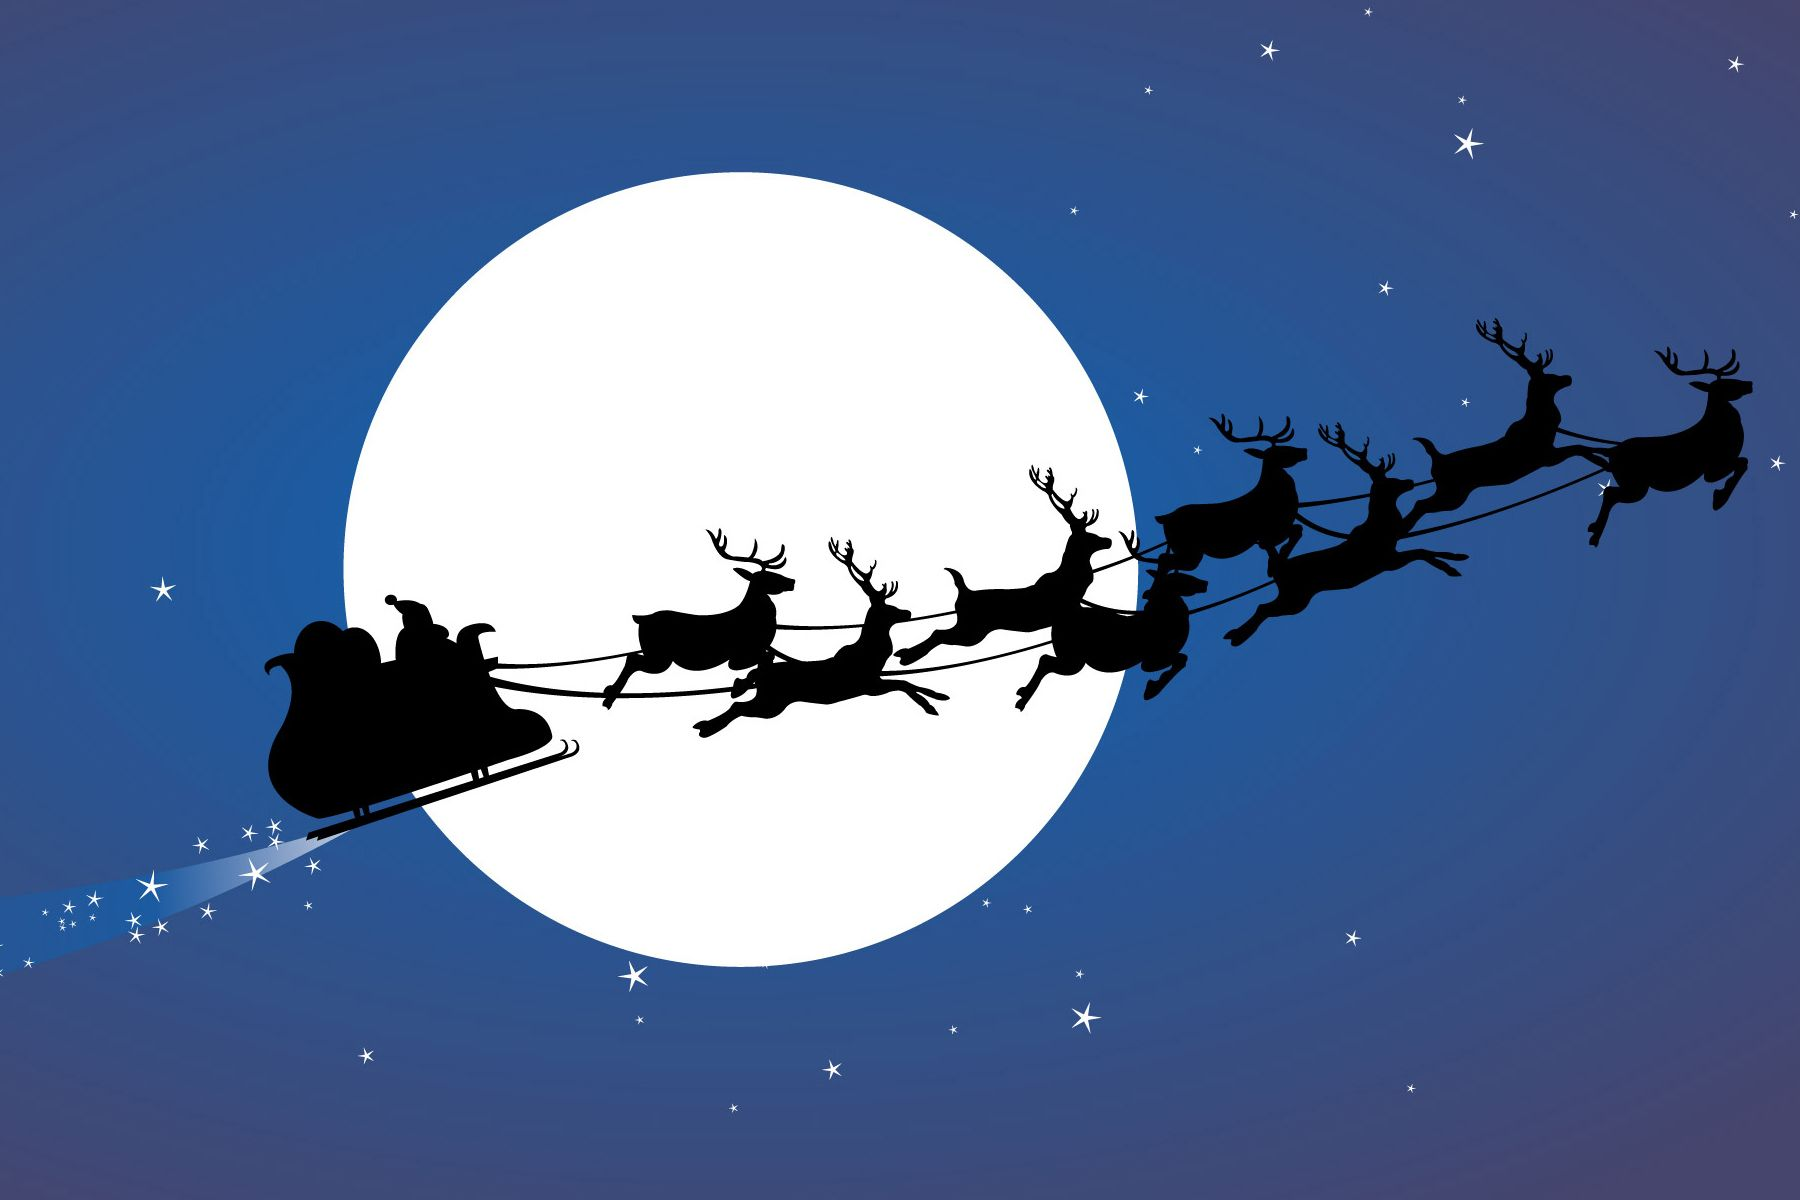 santa sleigh silhouette - Google Search | Crafts/projects ...